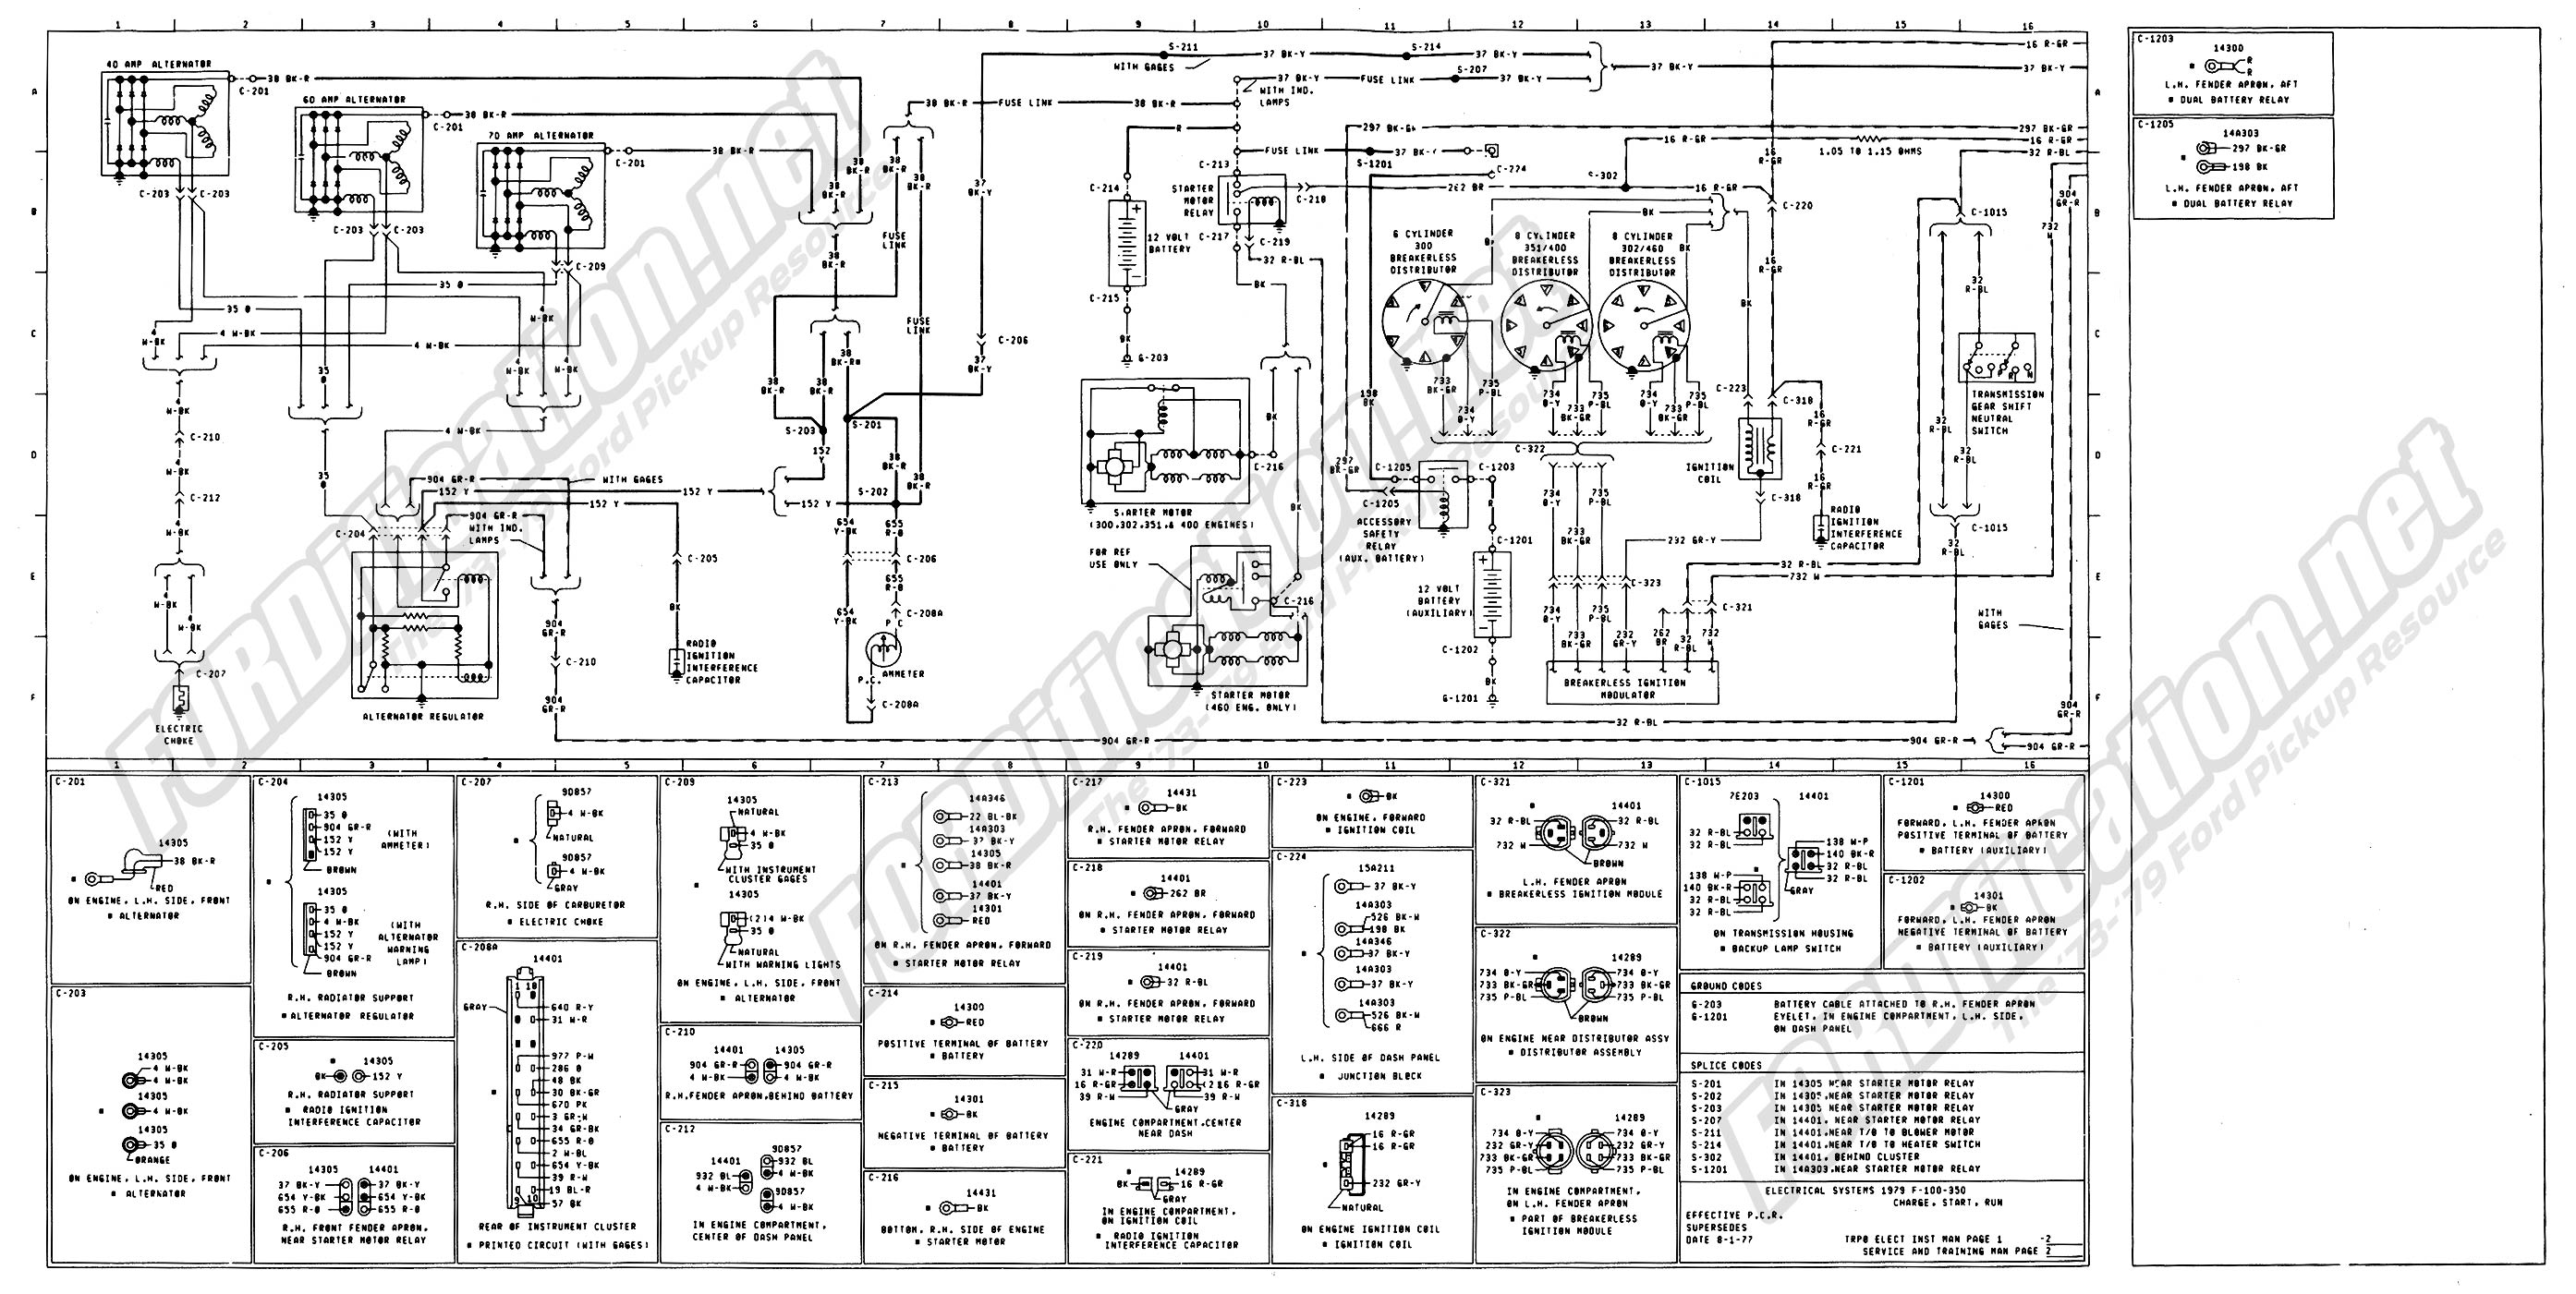 wiring_79master_2of9 1973 1979 ford truck wiring diagrams & schematics fordification net Ford 545C Tractor at n-0.co